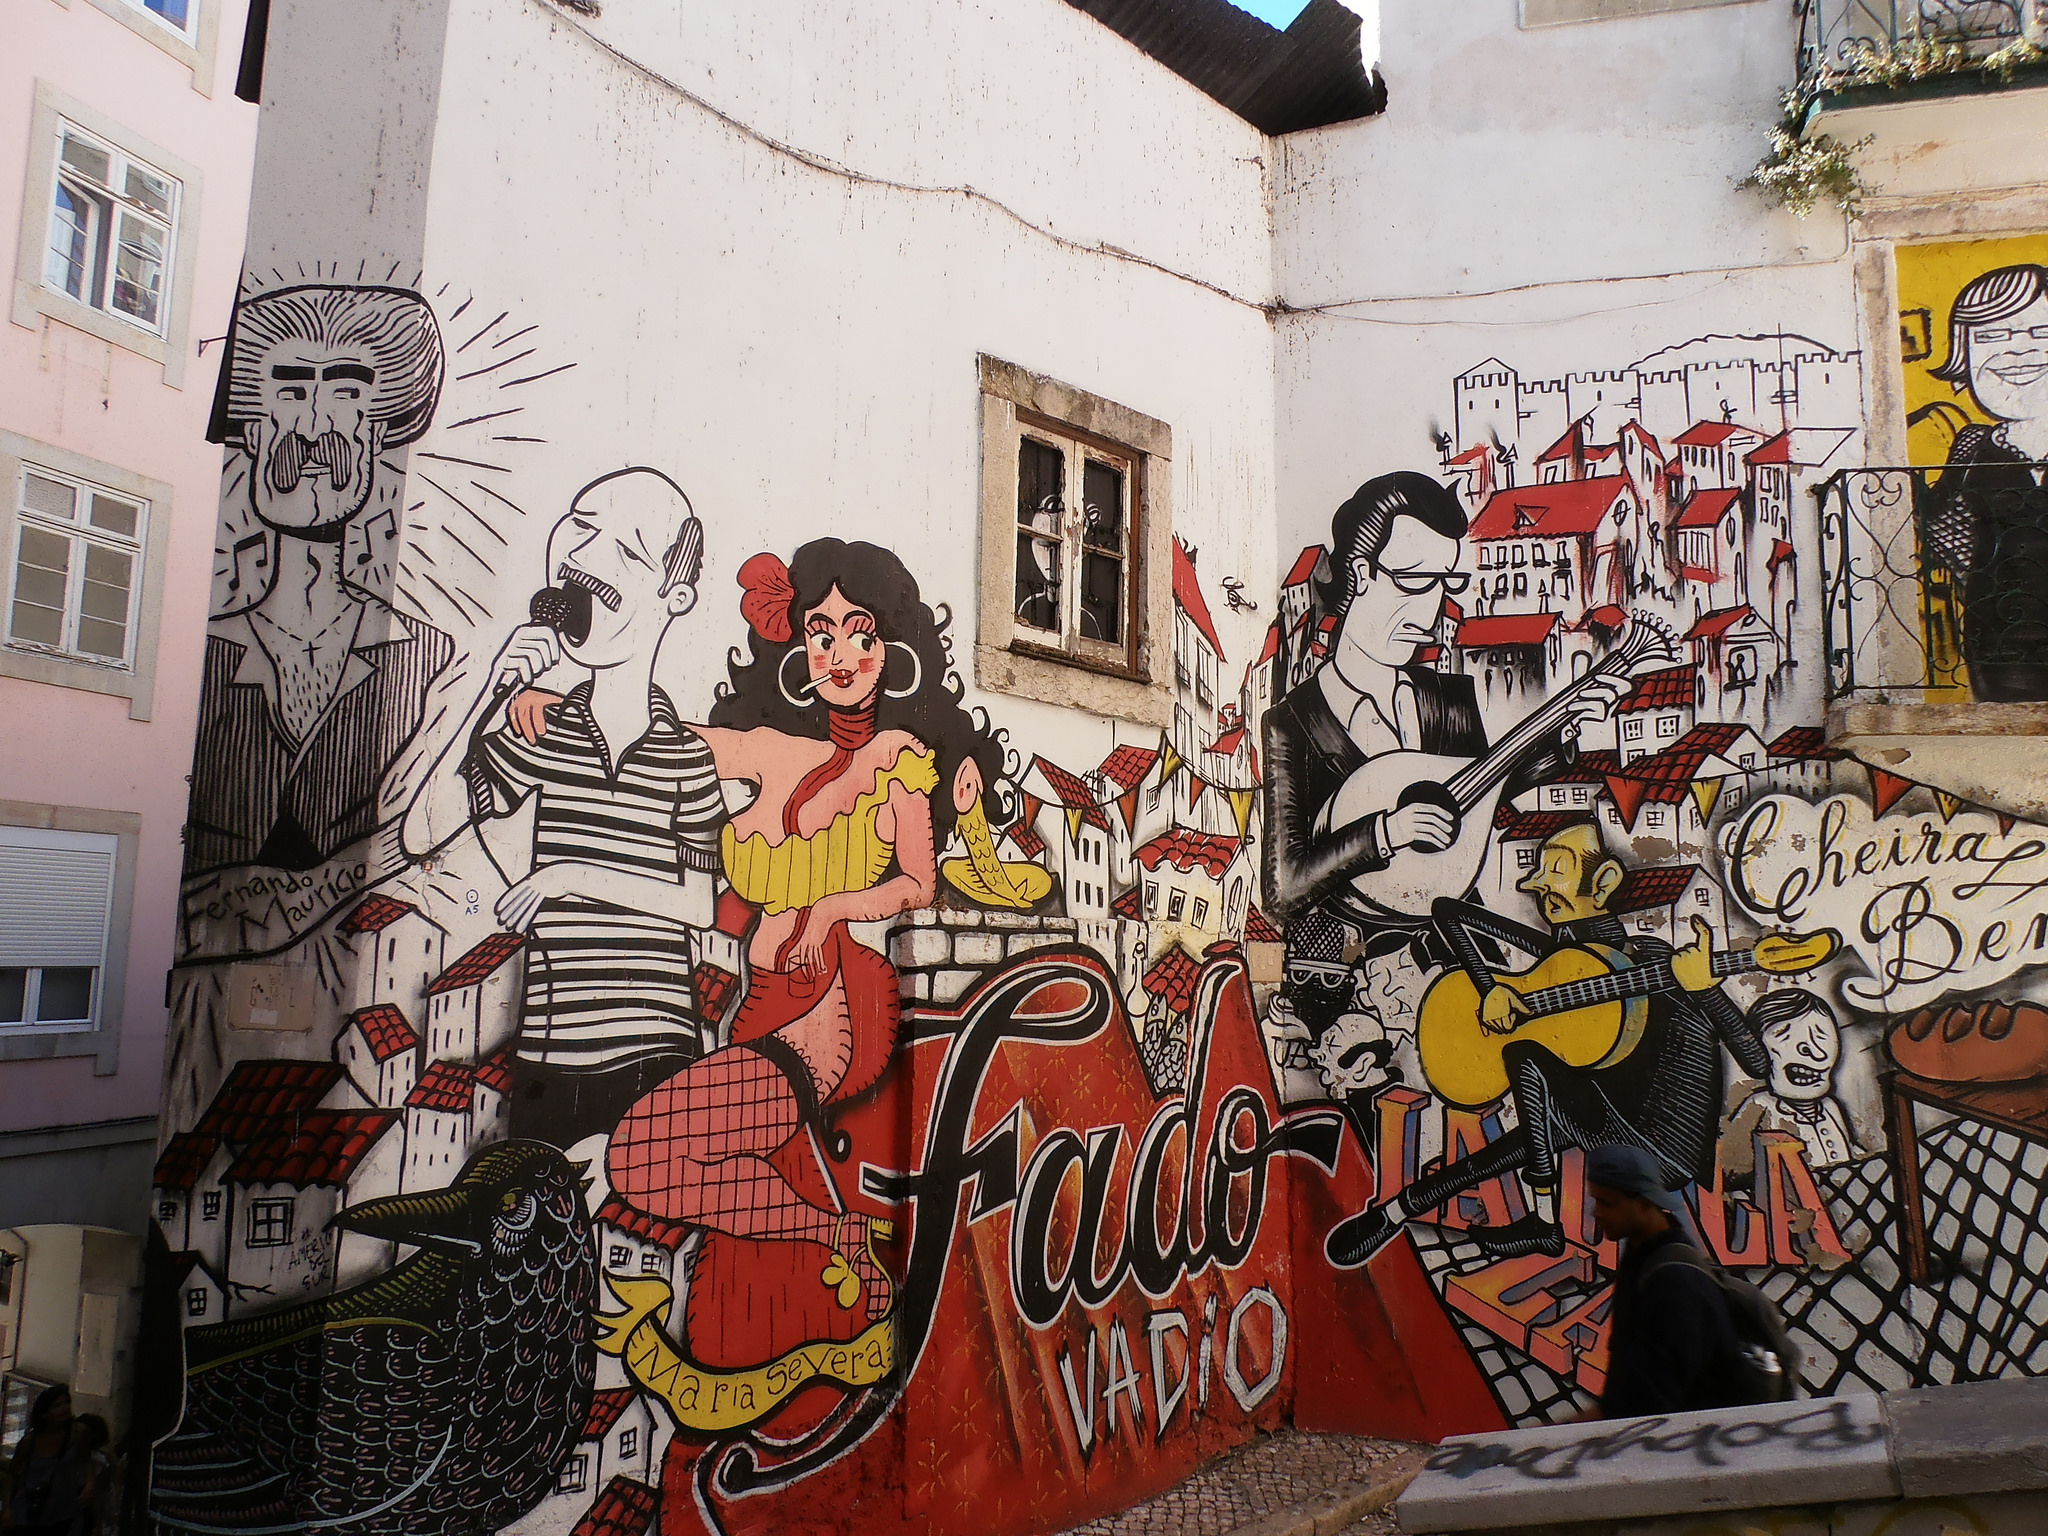 Fado-themed street art in Lisbon © Jeanne Menjoulet / Flickr